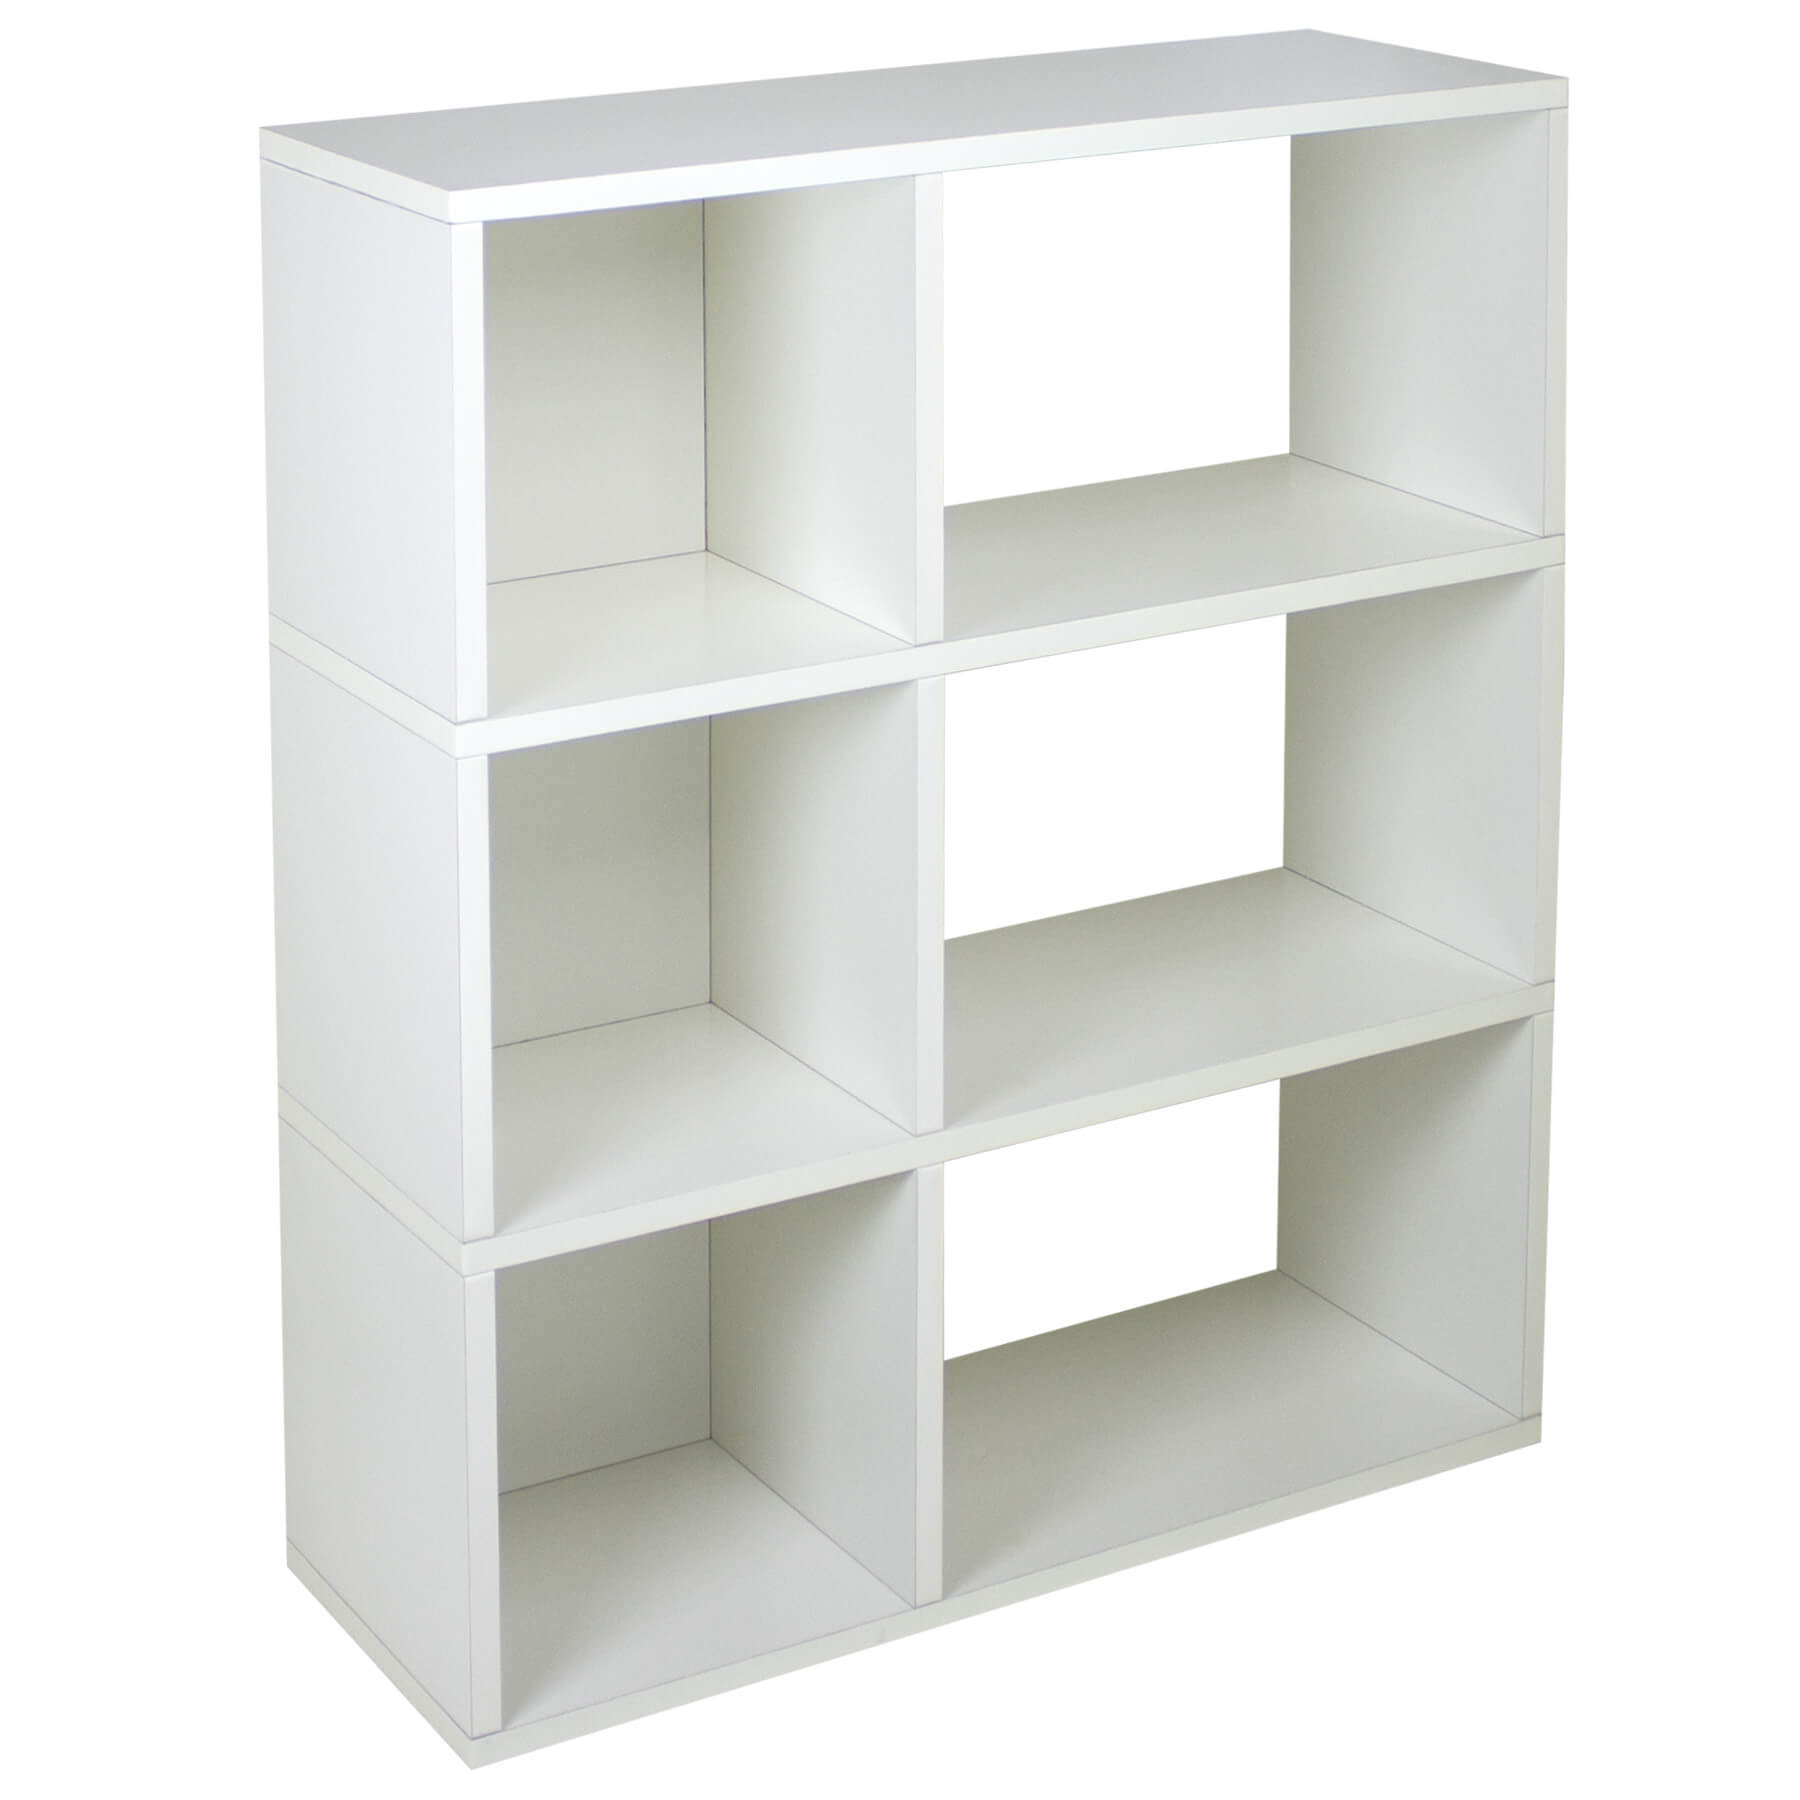 Cube Bookshelf 15 6 Cube Bookcases Shelves And Storage Options